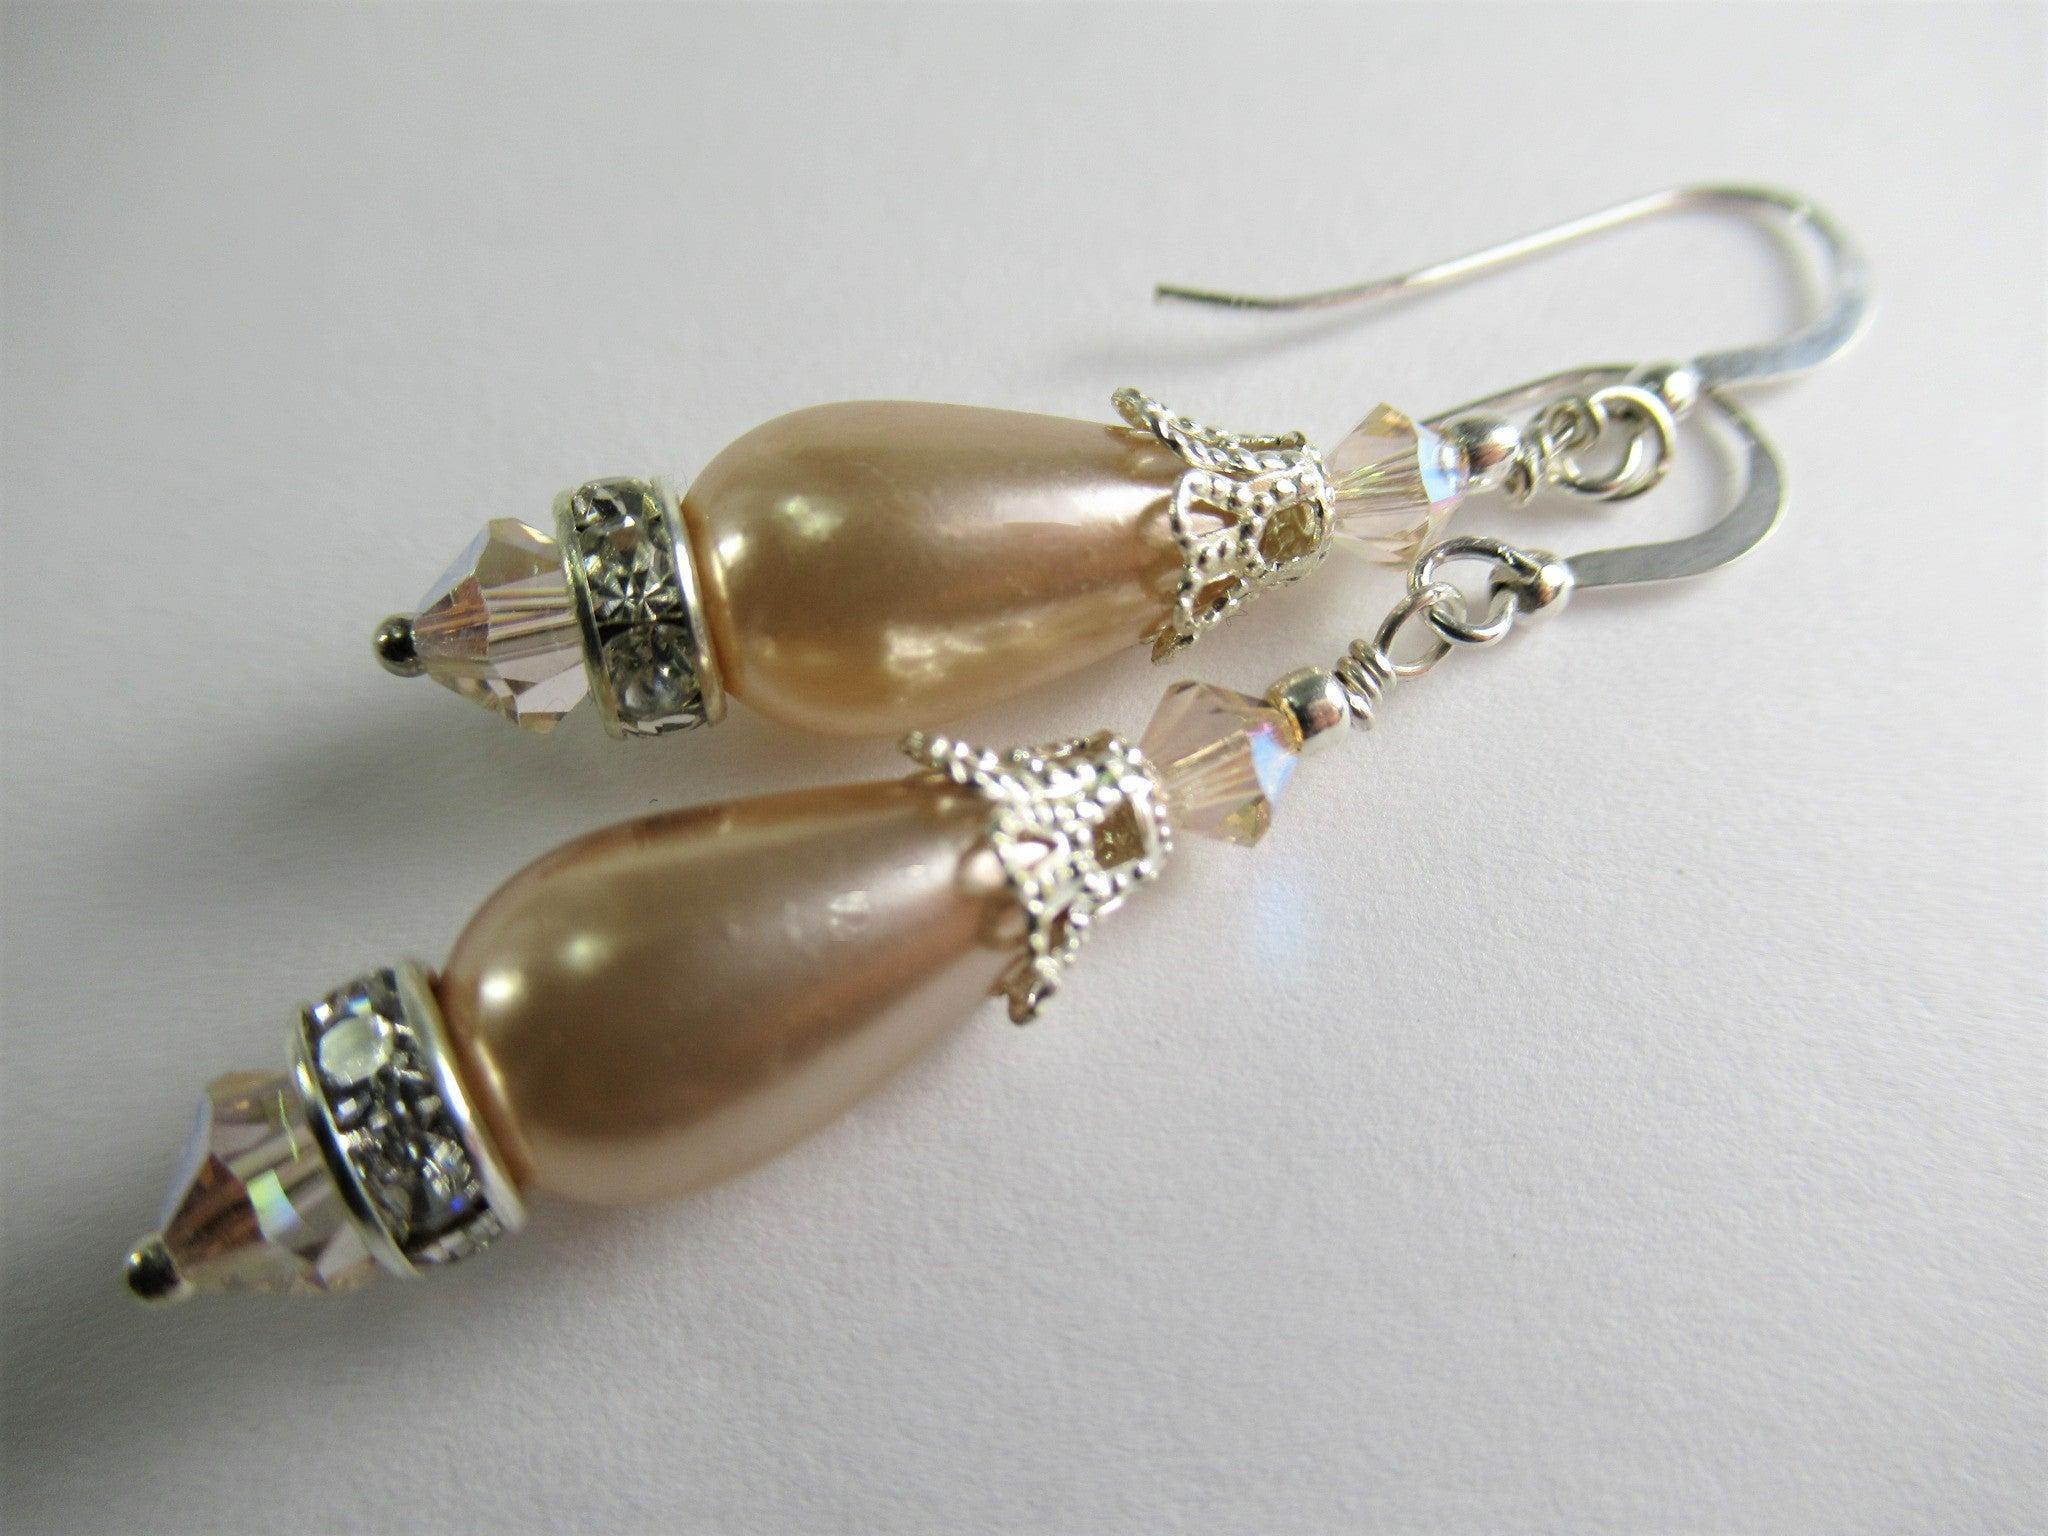 Blush Peach Pearl Teardrop and Swarovski Crystal Bridal Earrings on Sterling Wires - Odyssey Creations